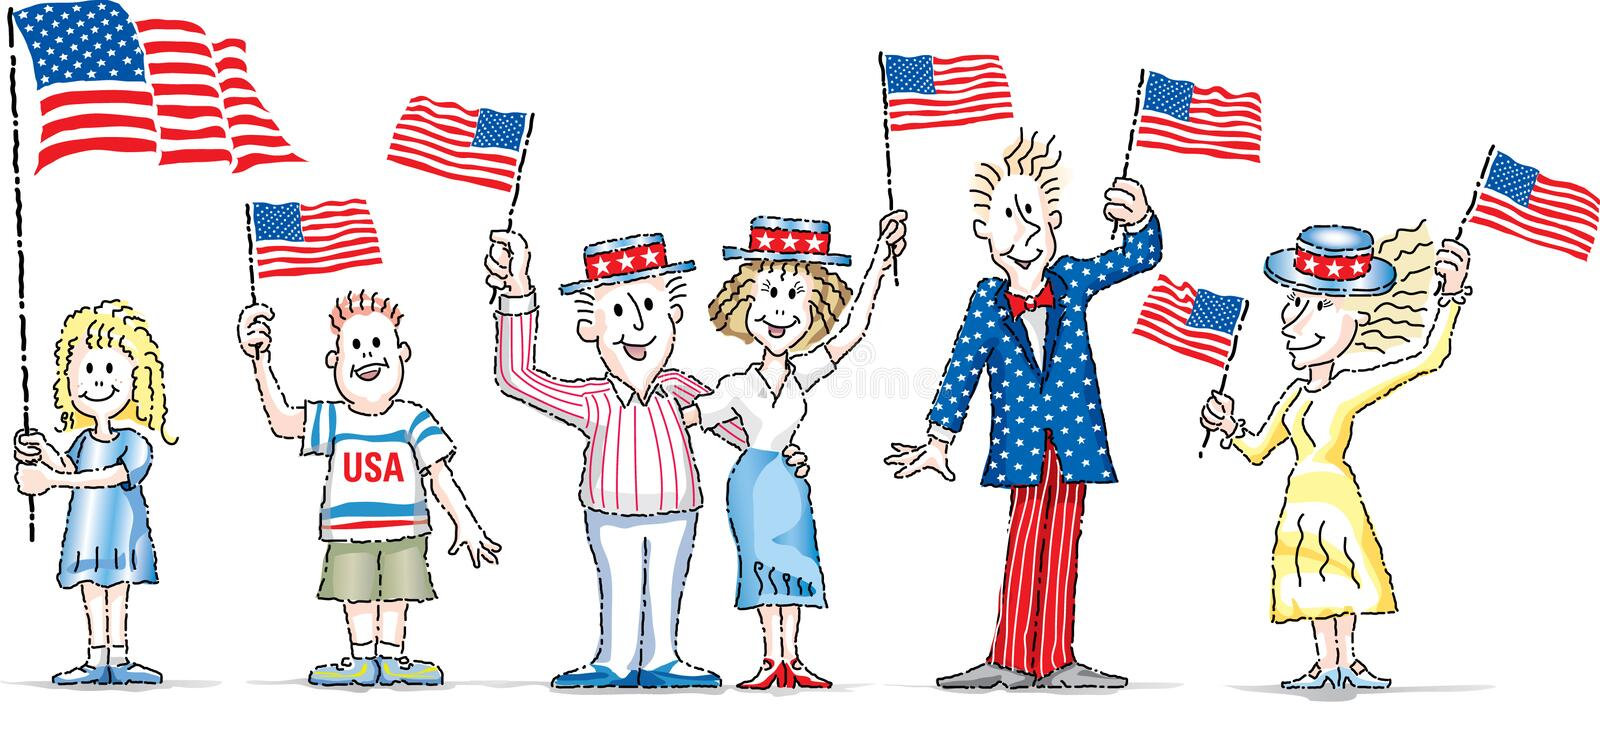 CARTOON CHARACTERS WAVING U.S. PATRIOTIC FLAGS. Cartoon characters waving U.S. flags for holiday celebrations in USA. The men women and children are enthusiastic stock illustration